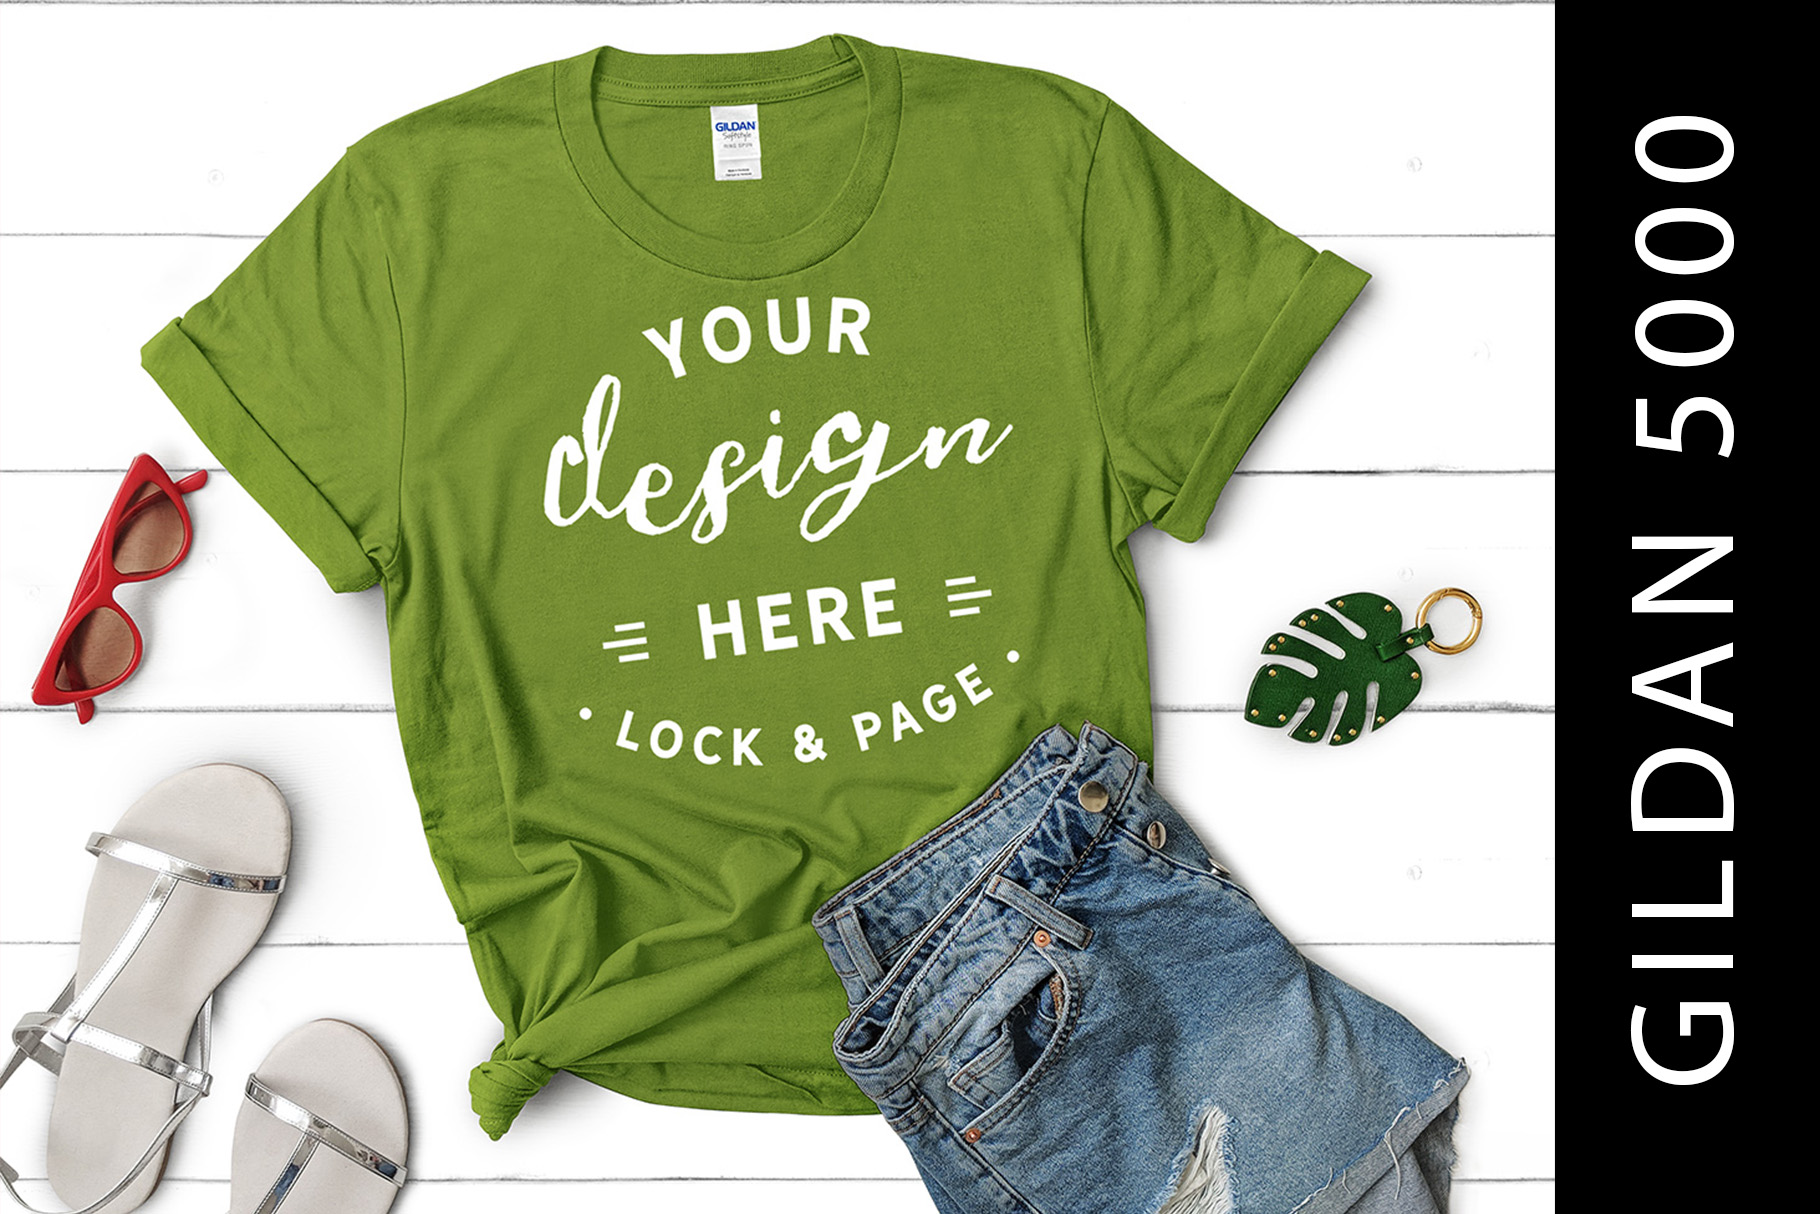 Download Free Kiwi Gildan 5000 Knotted T Shirt Mockup Graphic By Lockandpage for Cricut Explore, Silhouette and other cutting machines.